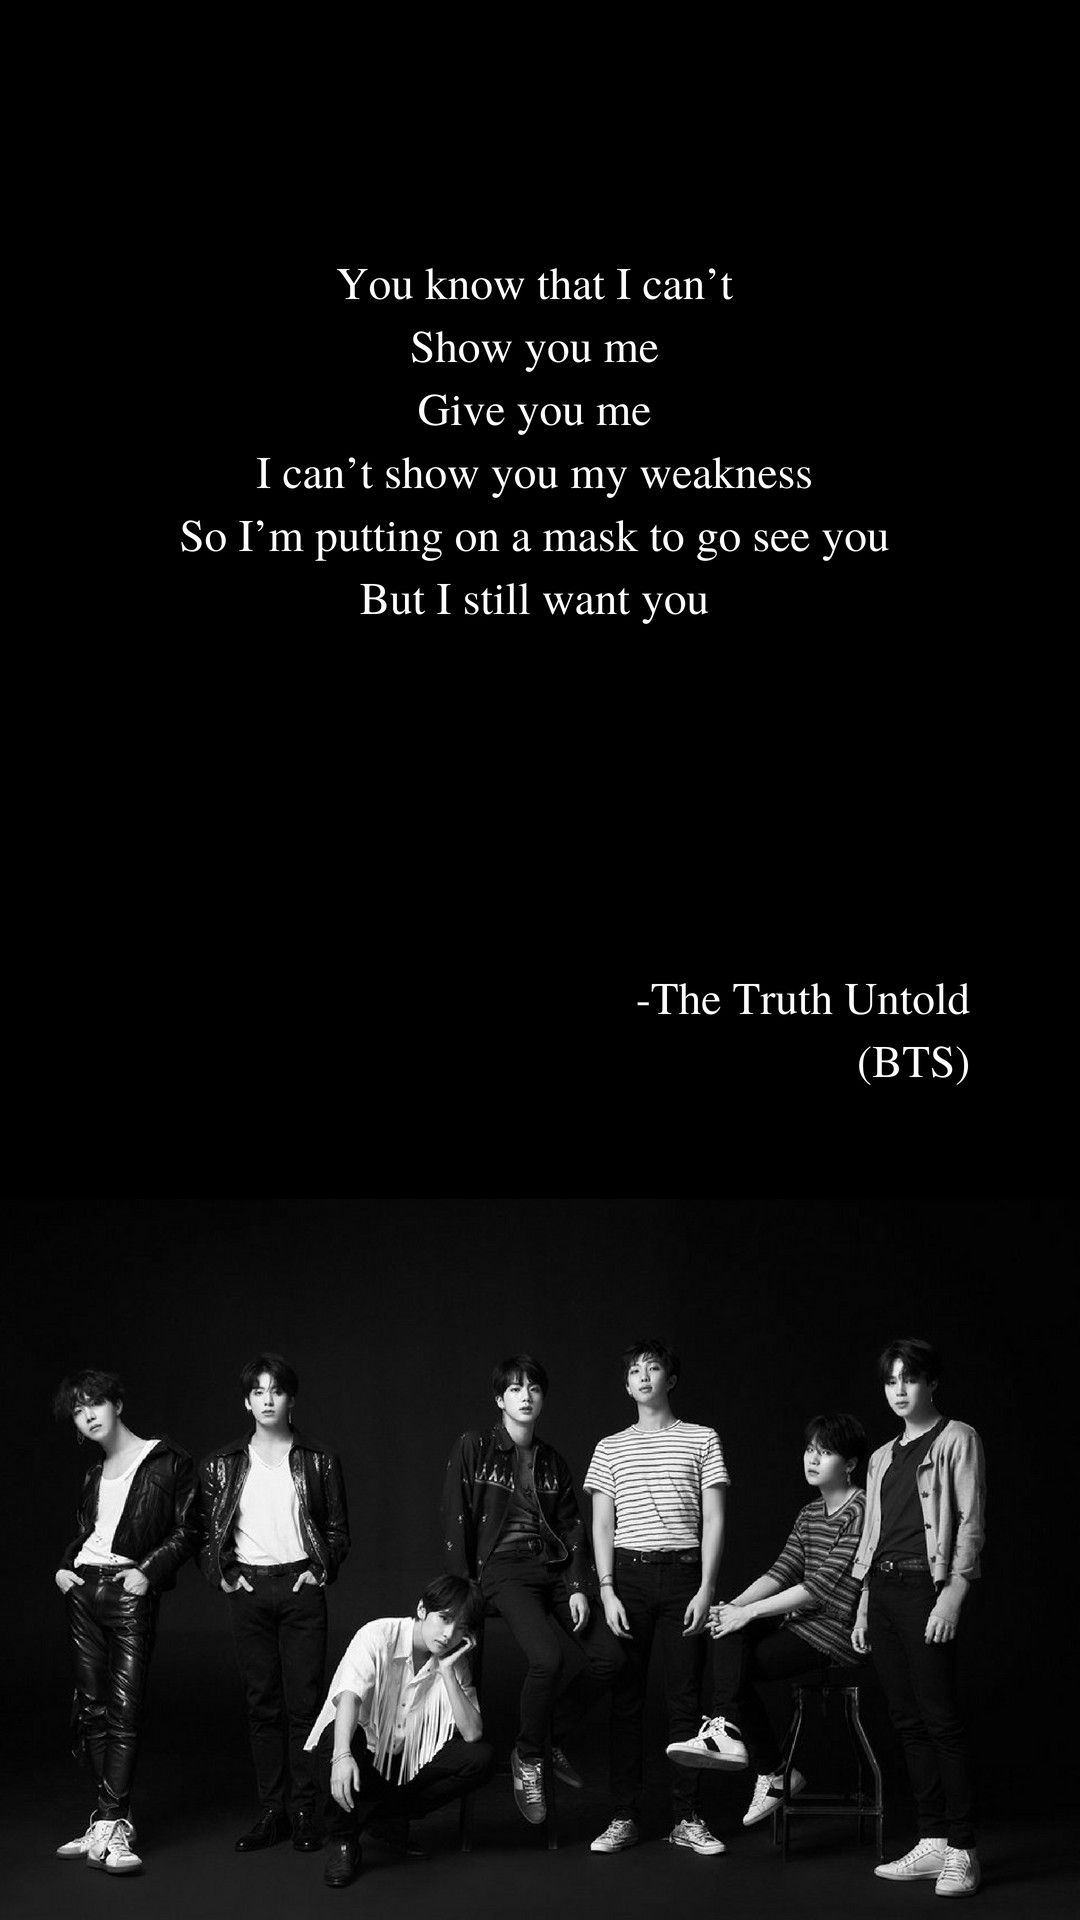 The Truth Untold By Bts Lyrics Wallpaper Positive Wall